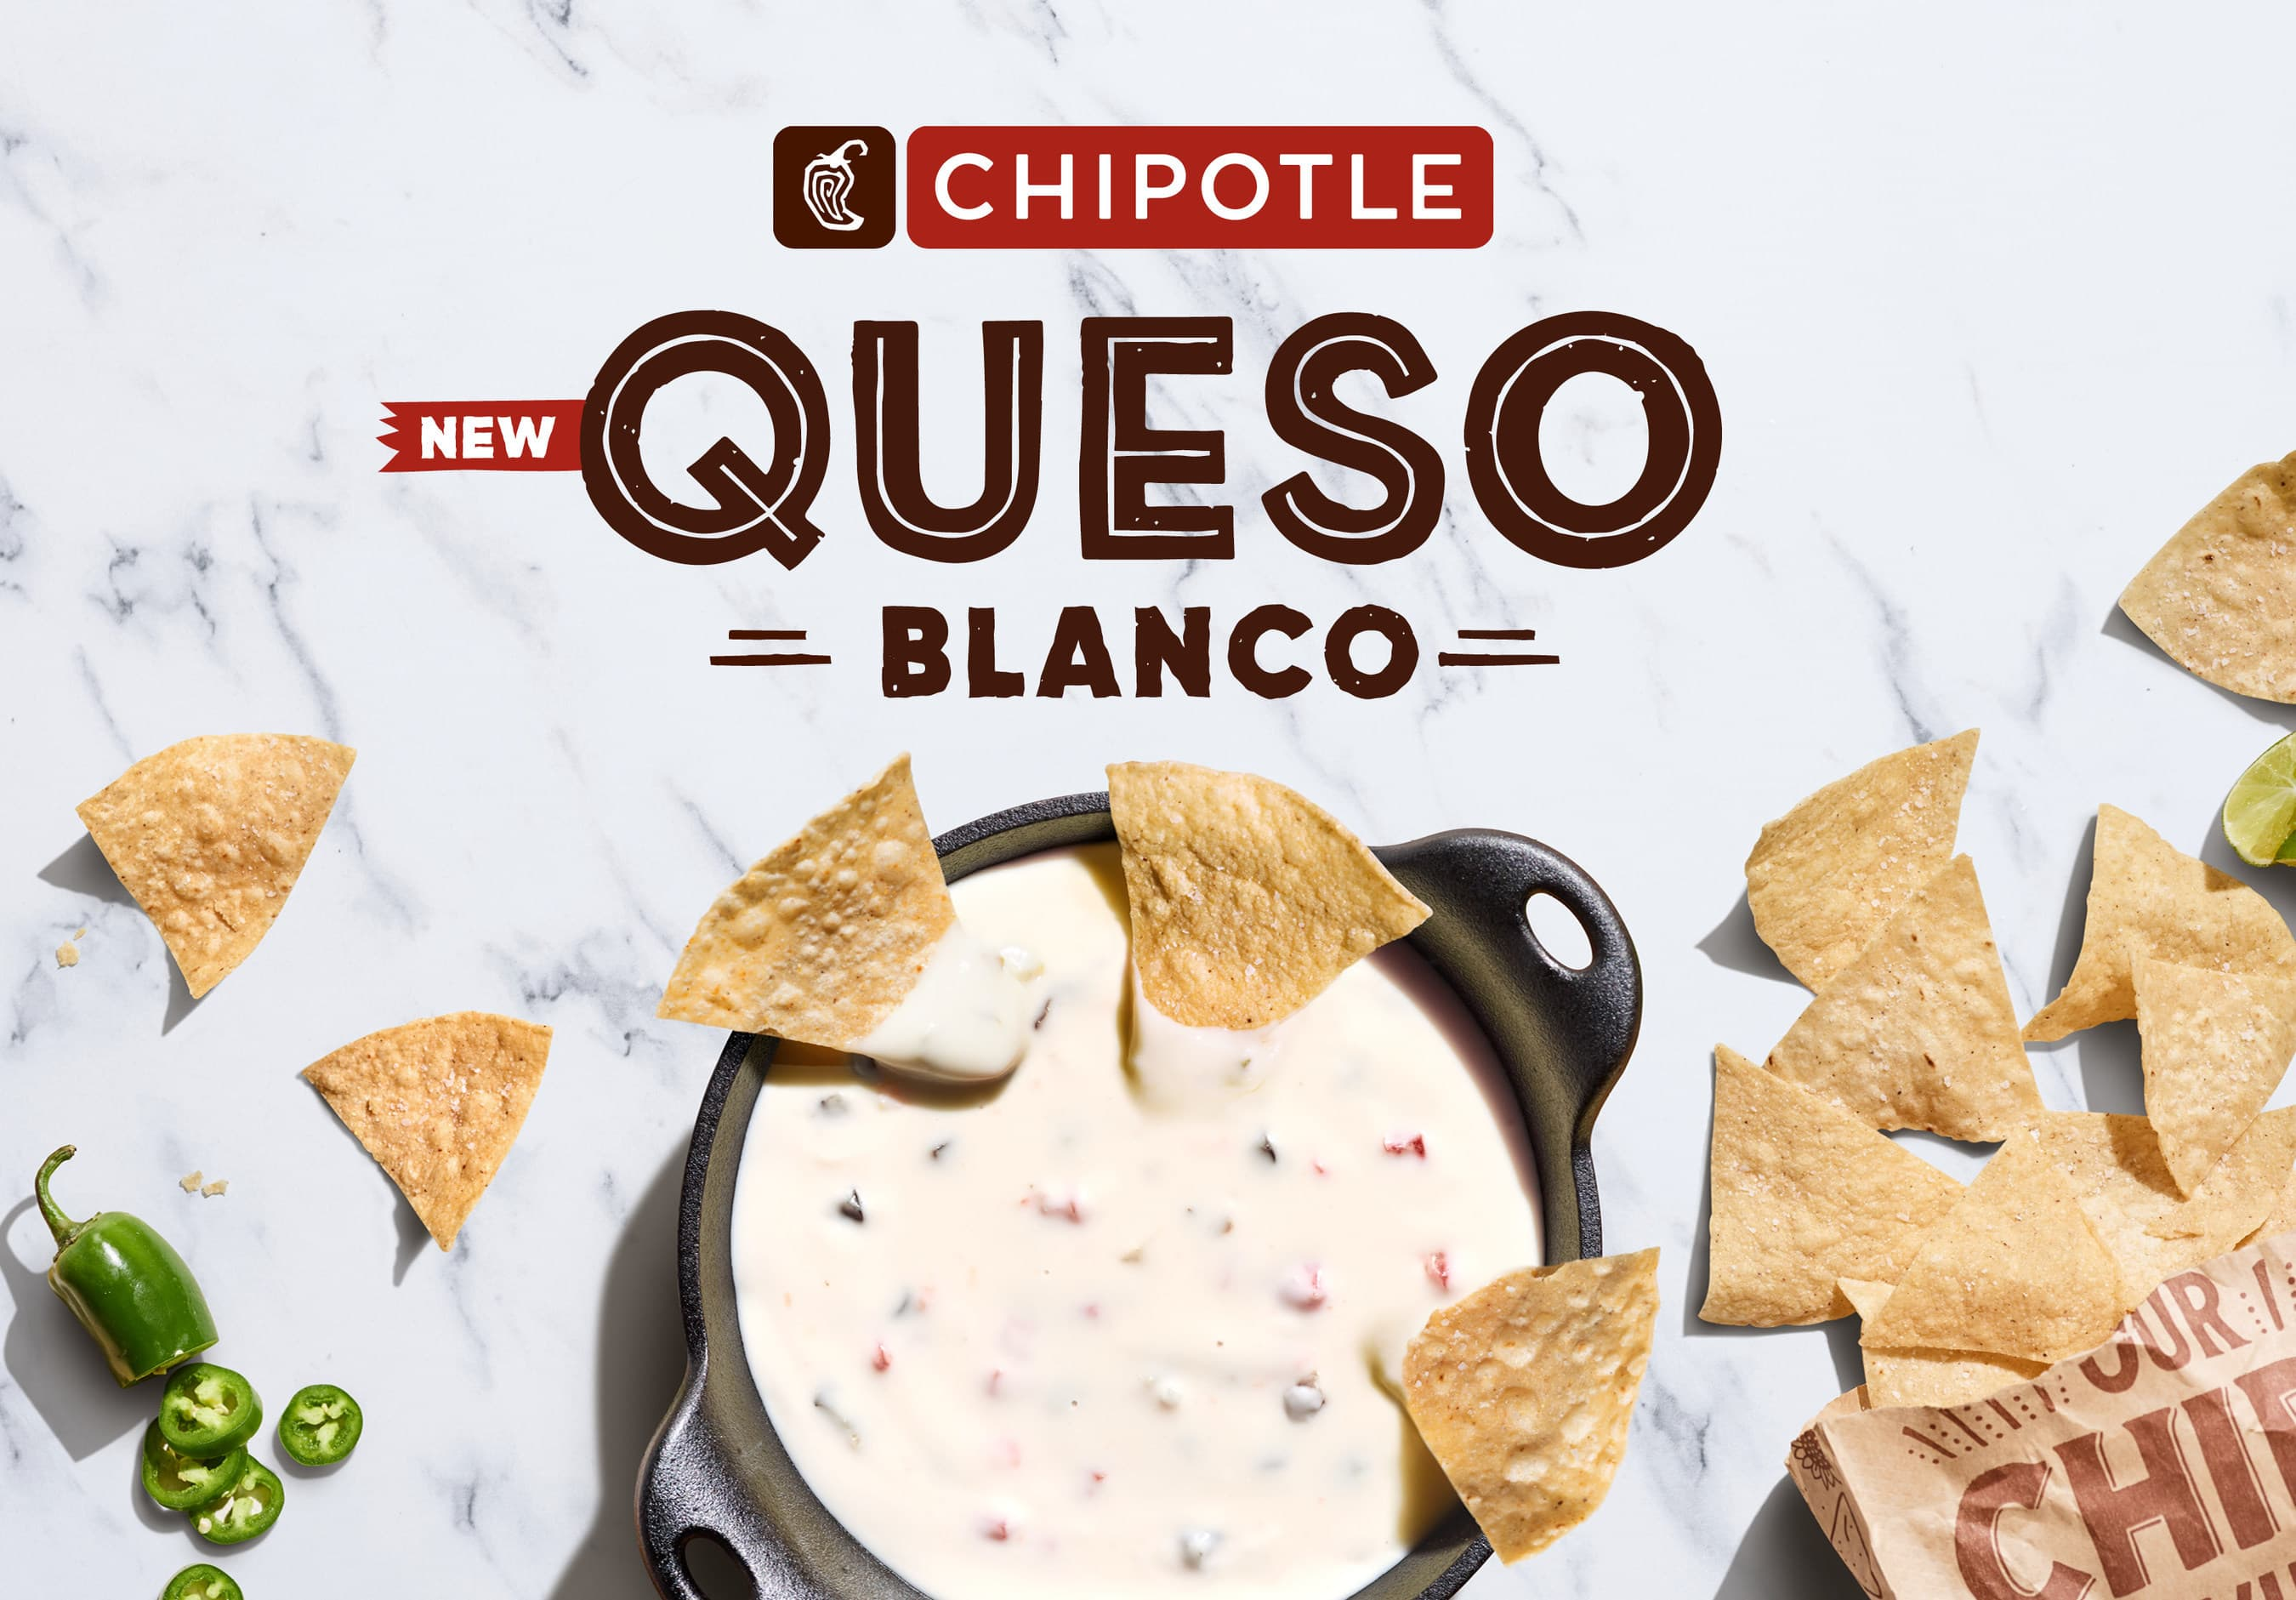 Chipotle is testing a replacement for its queso